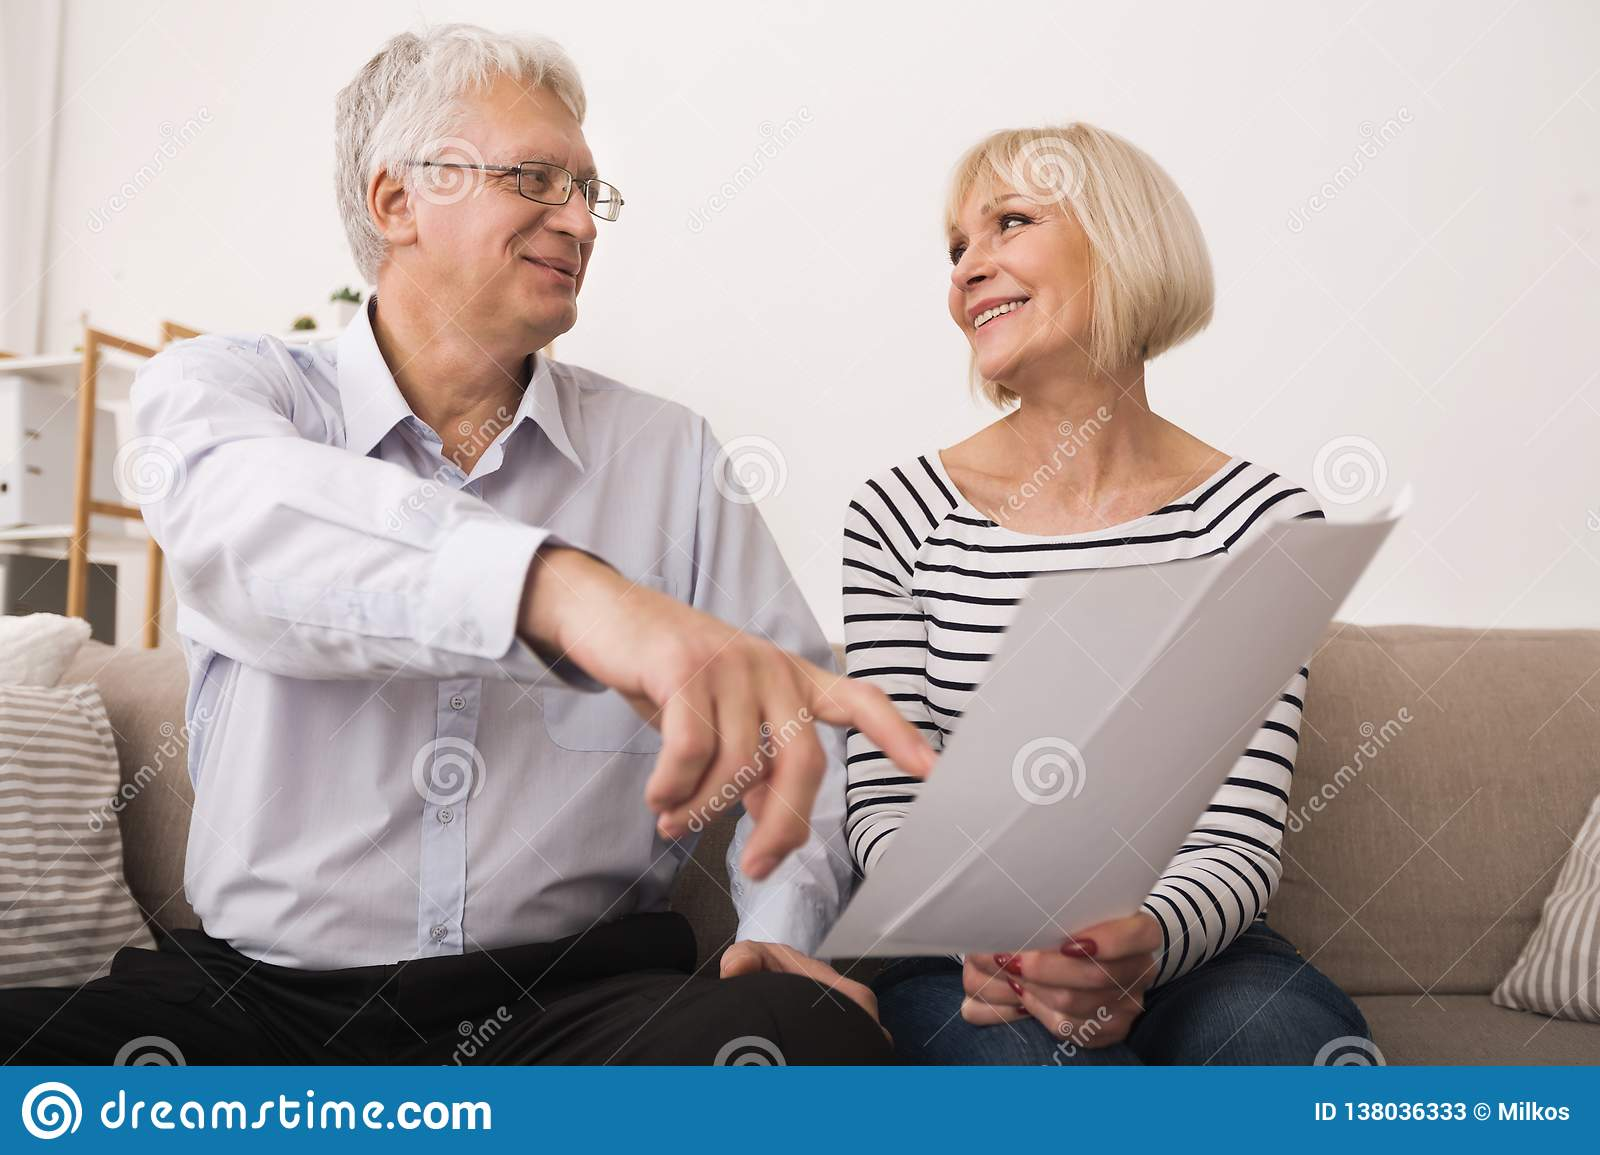 Elderly couple discussing documents, looking at each other